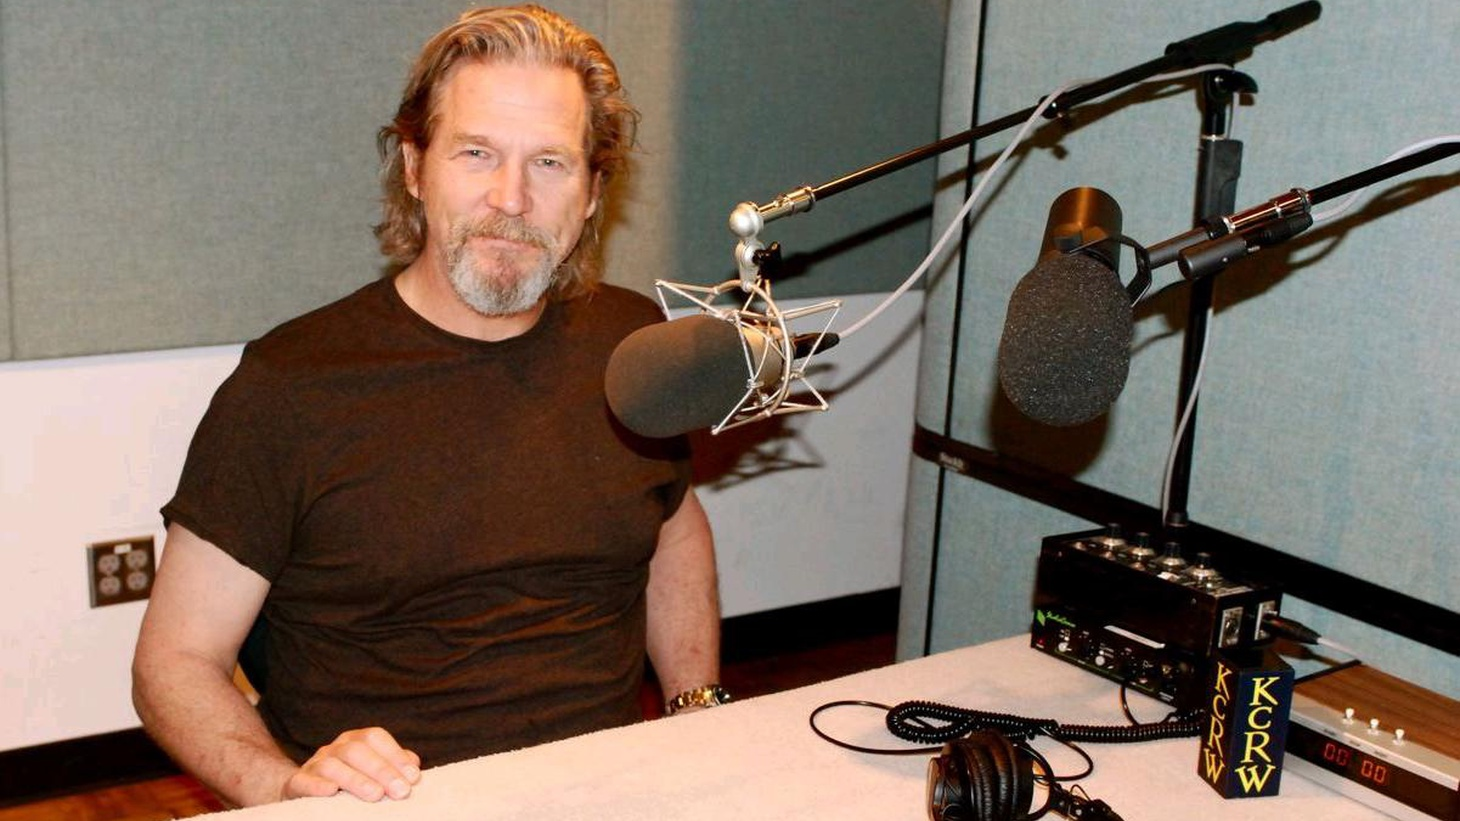 Jeff Bridges (The Last Picture Show, Texasville, Tron, The Big Lebowski) is a lucky break for first-time writer-directors.